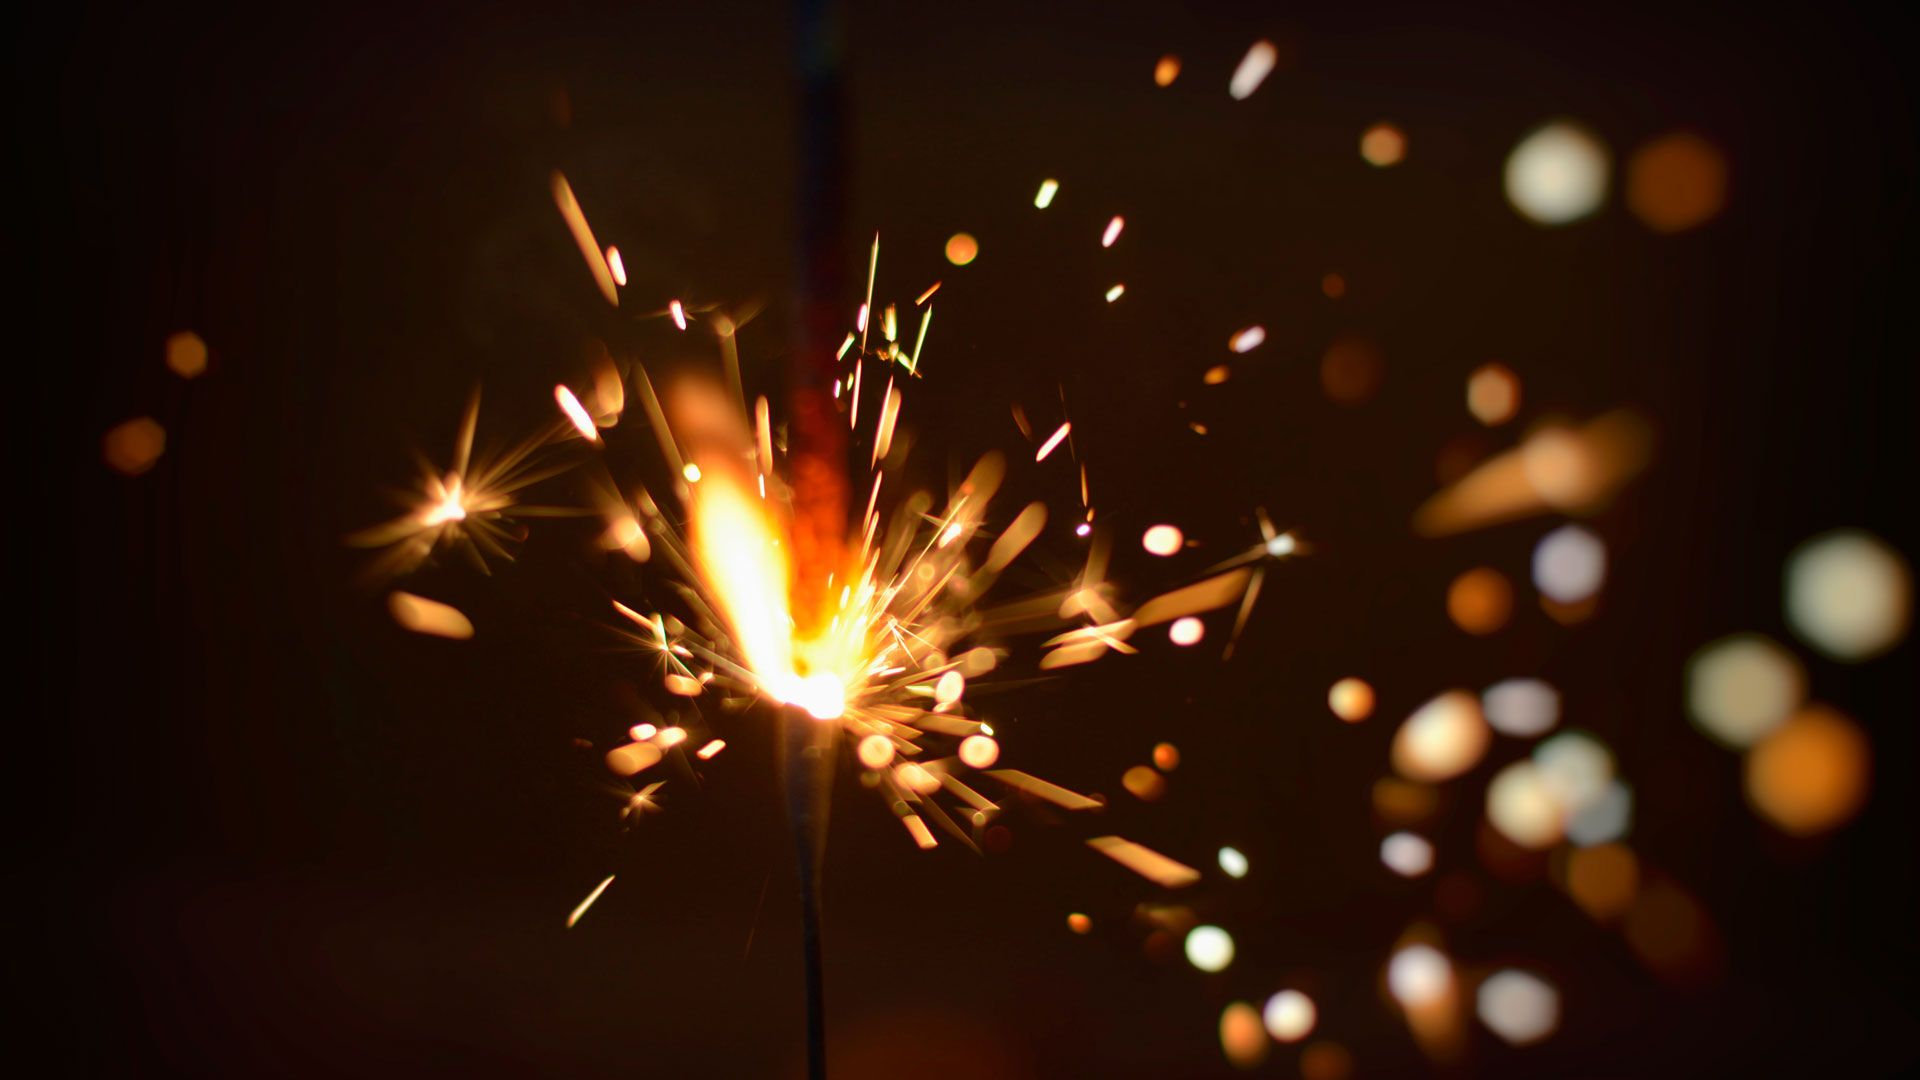 Spark picture image